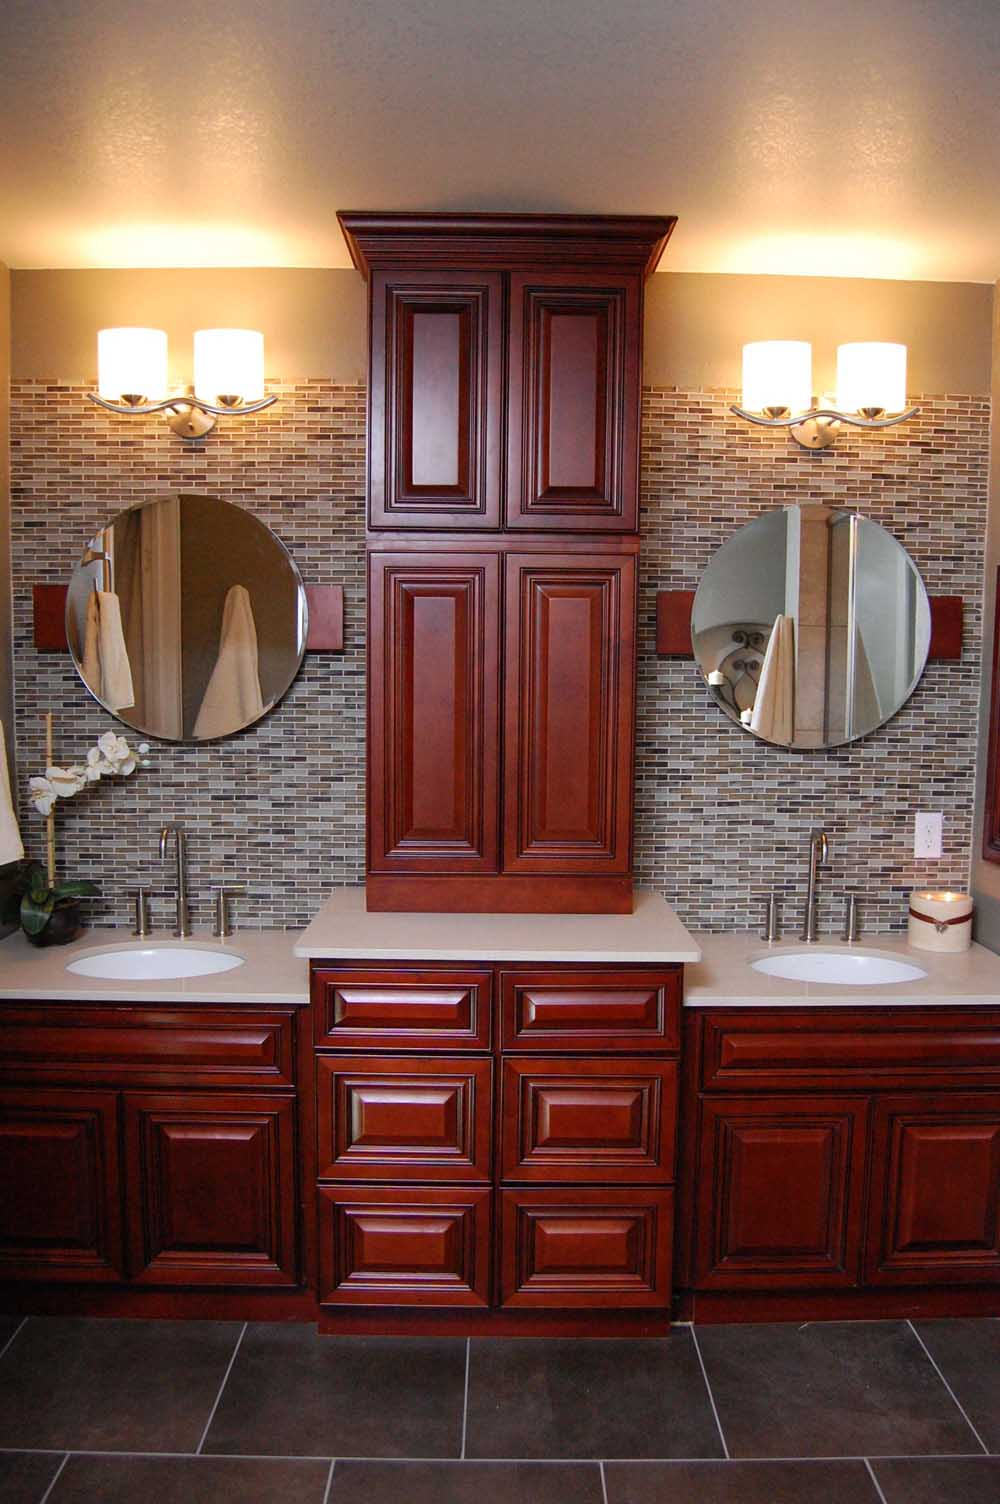 Stores that sell bathroom vanities - Cherryville Cherryville